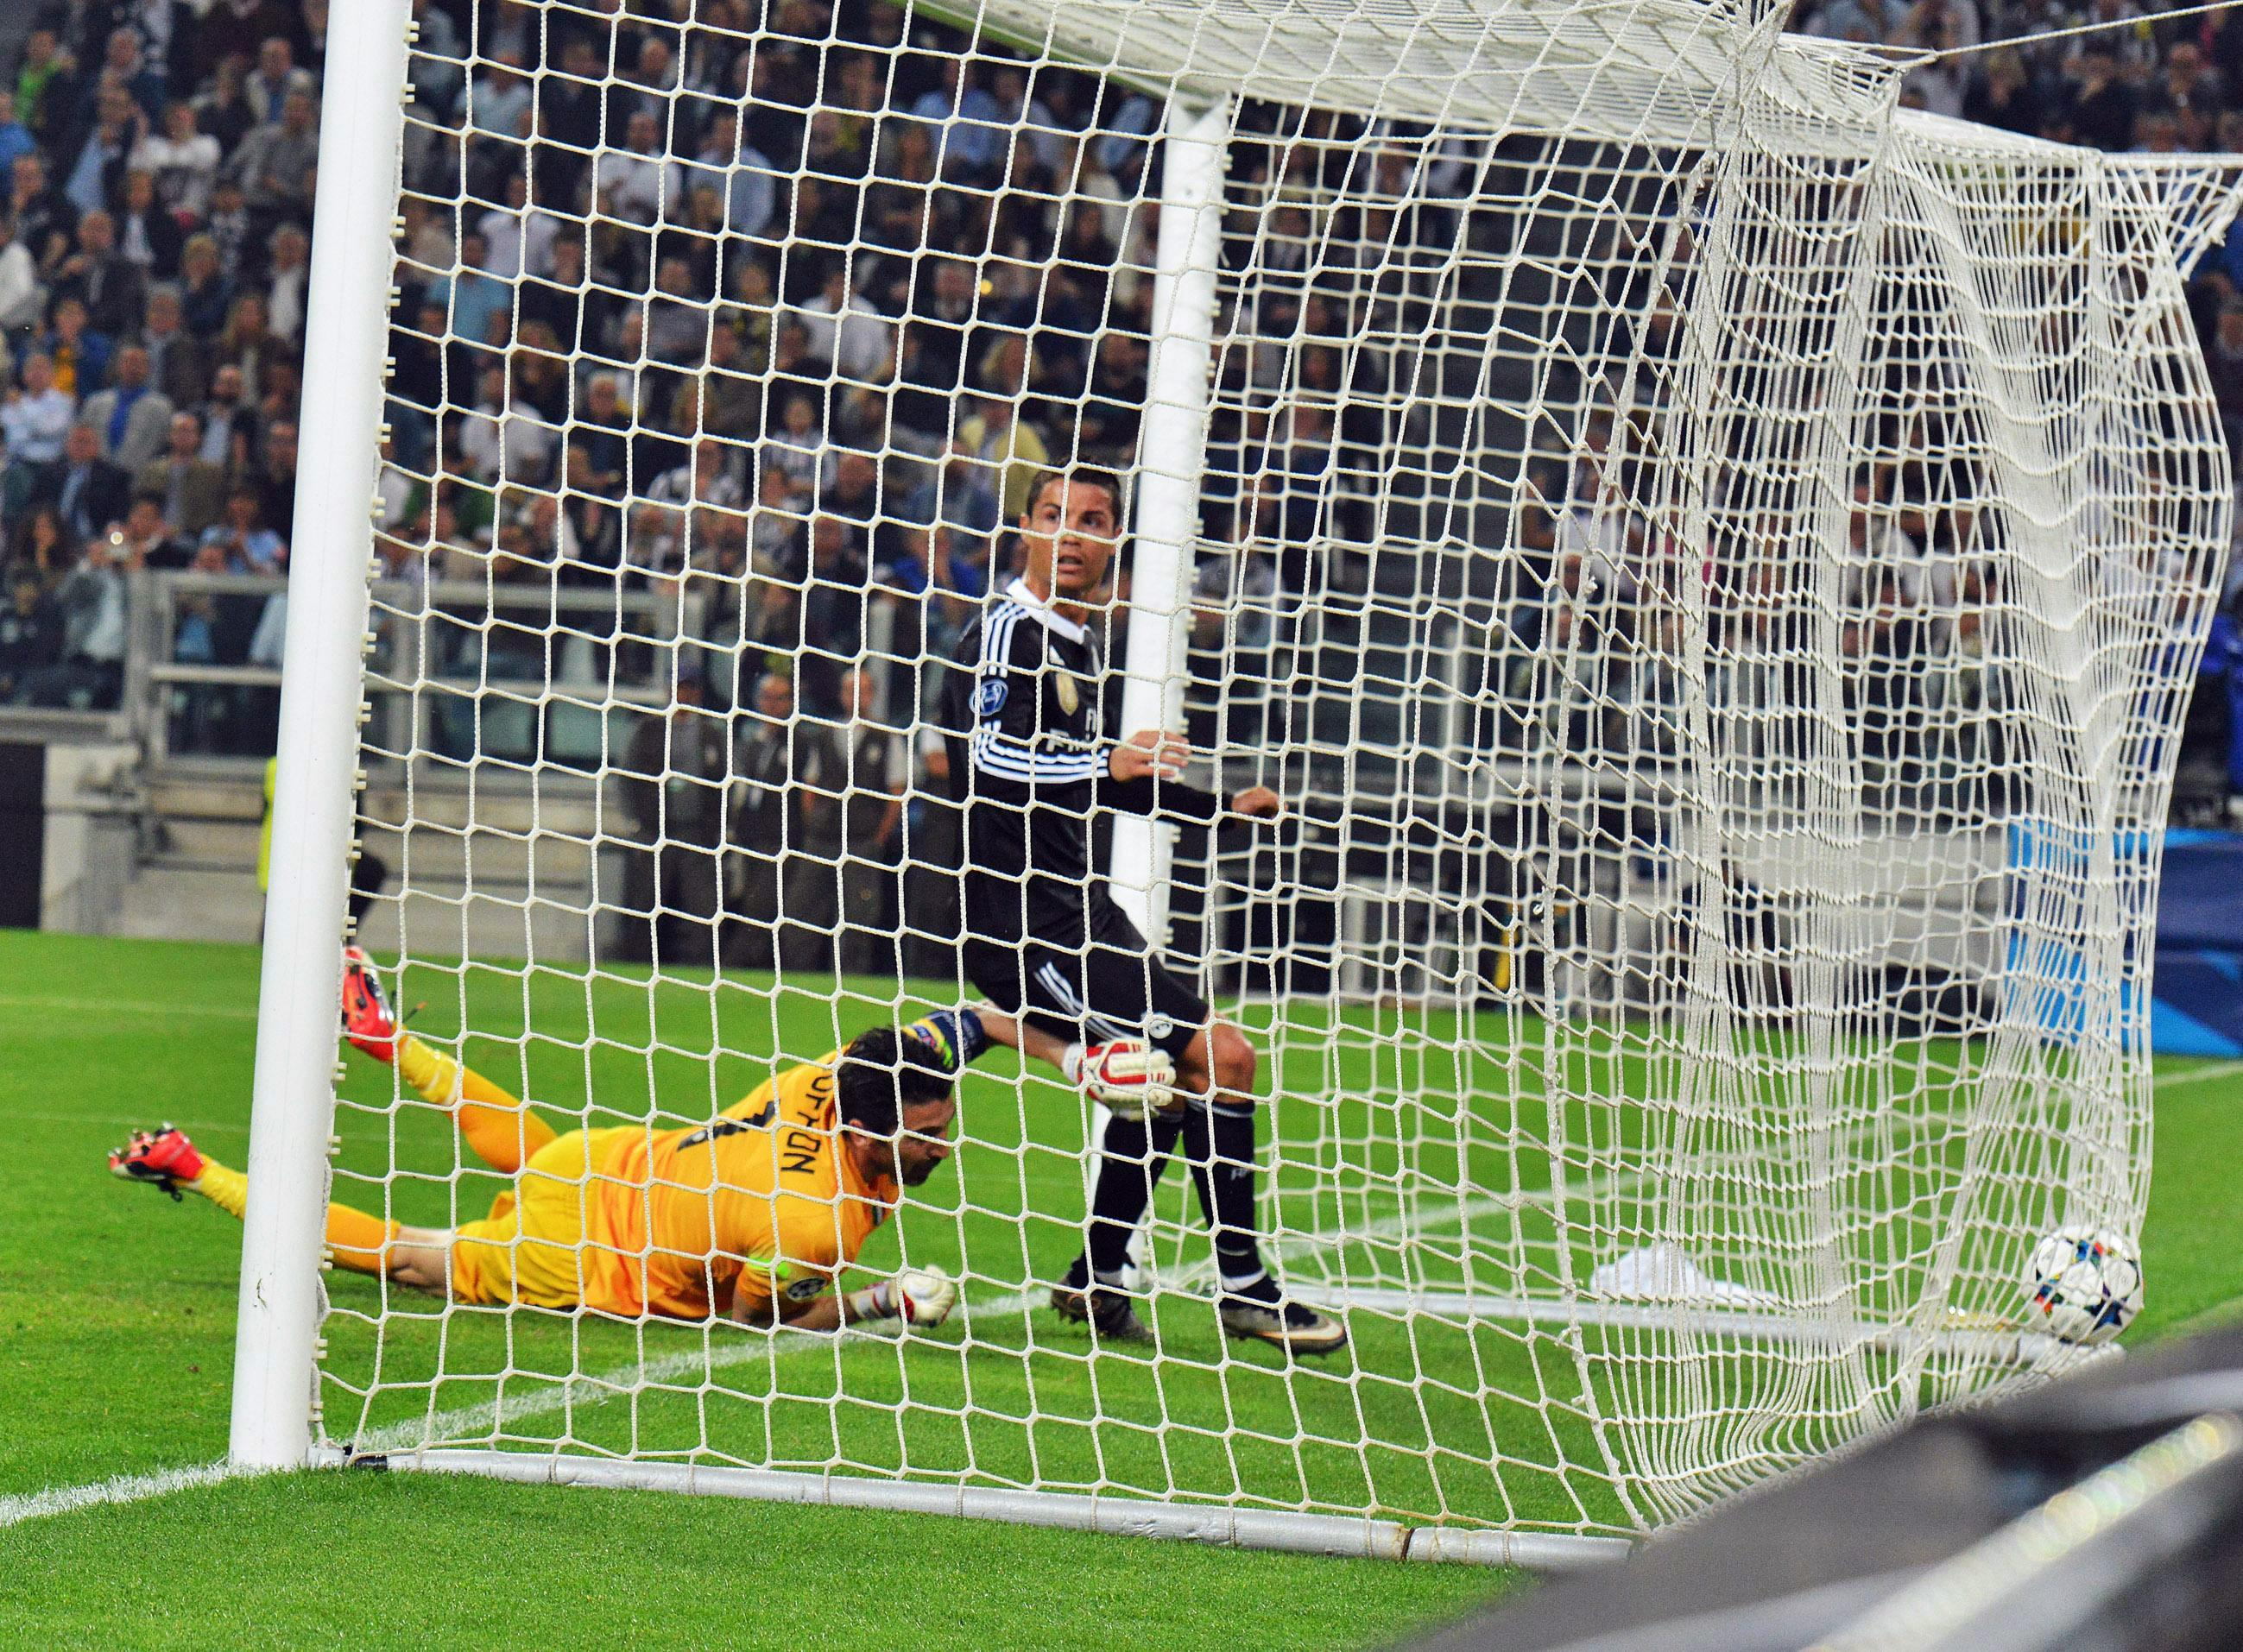 The Latest: Real Madrid, Juventus drawing 1-1 at halftime